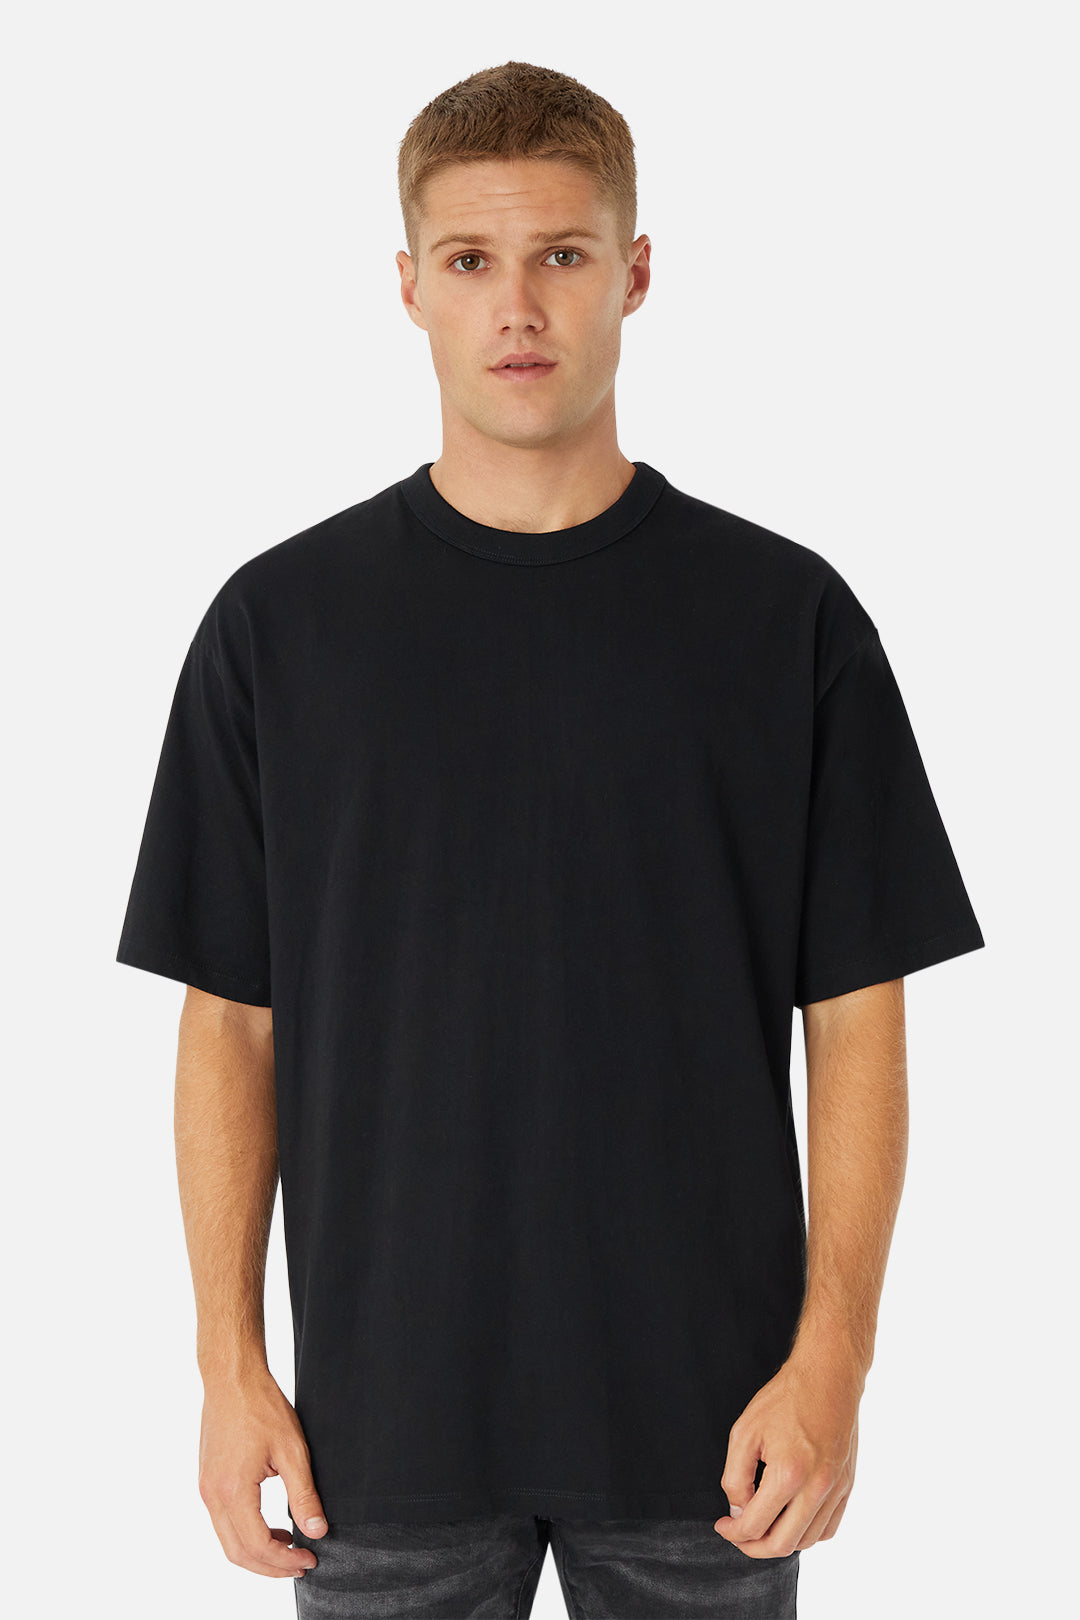 The Del Sur Tee - Black